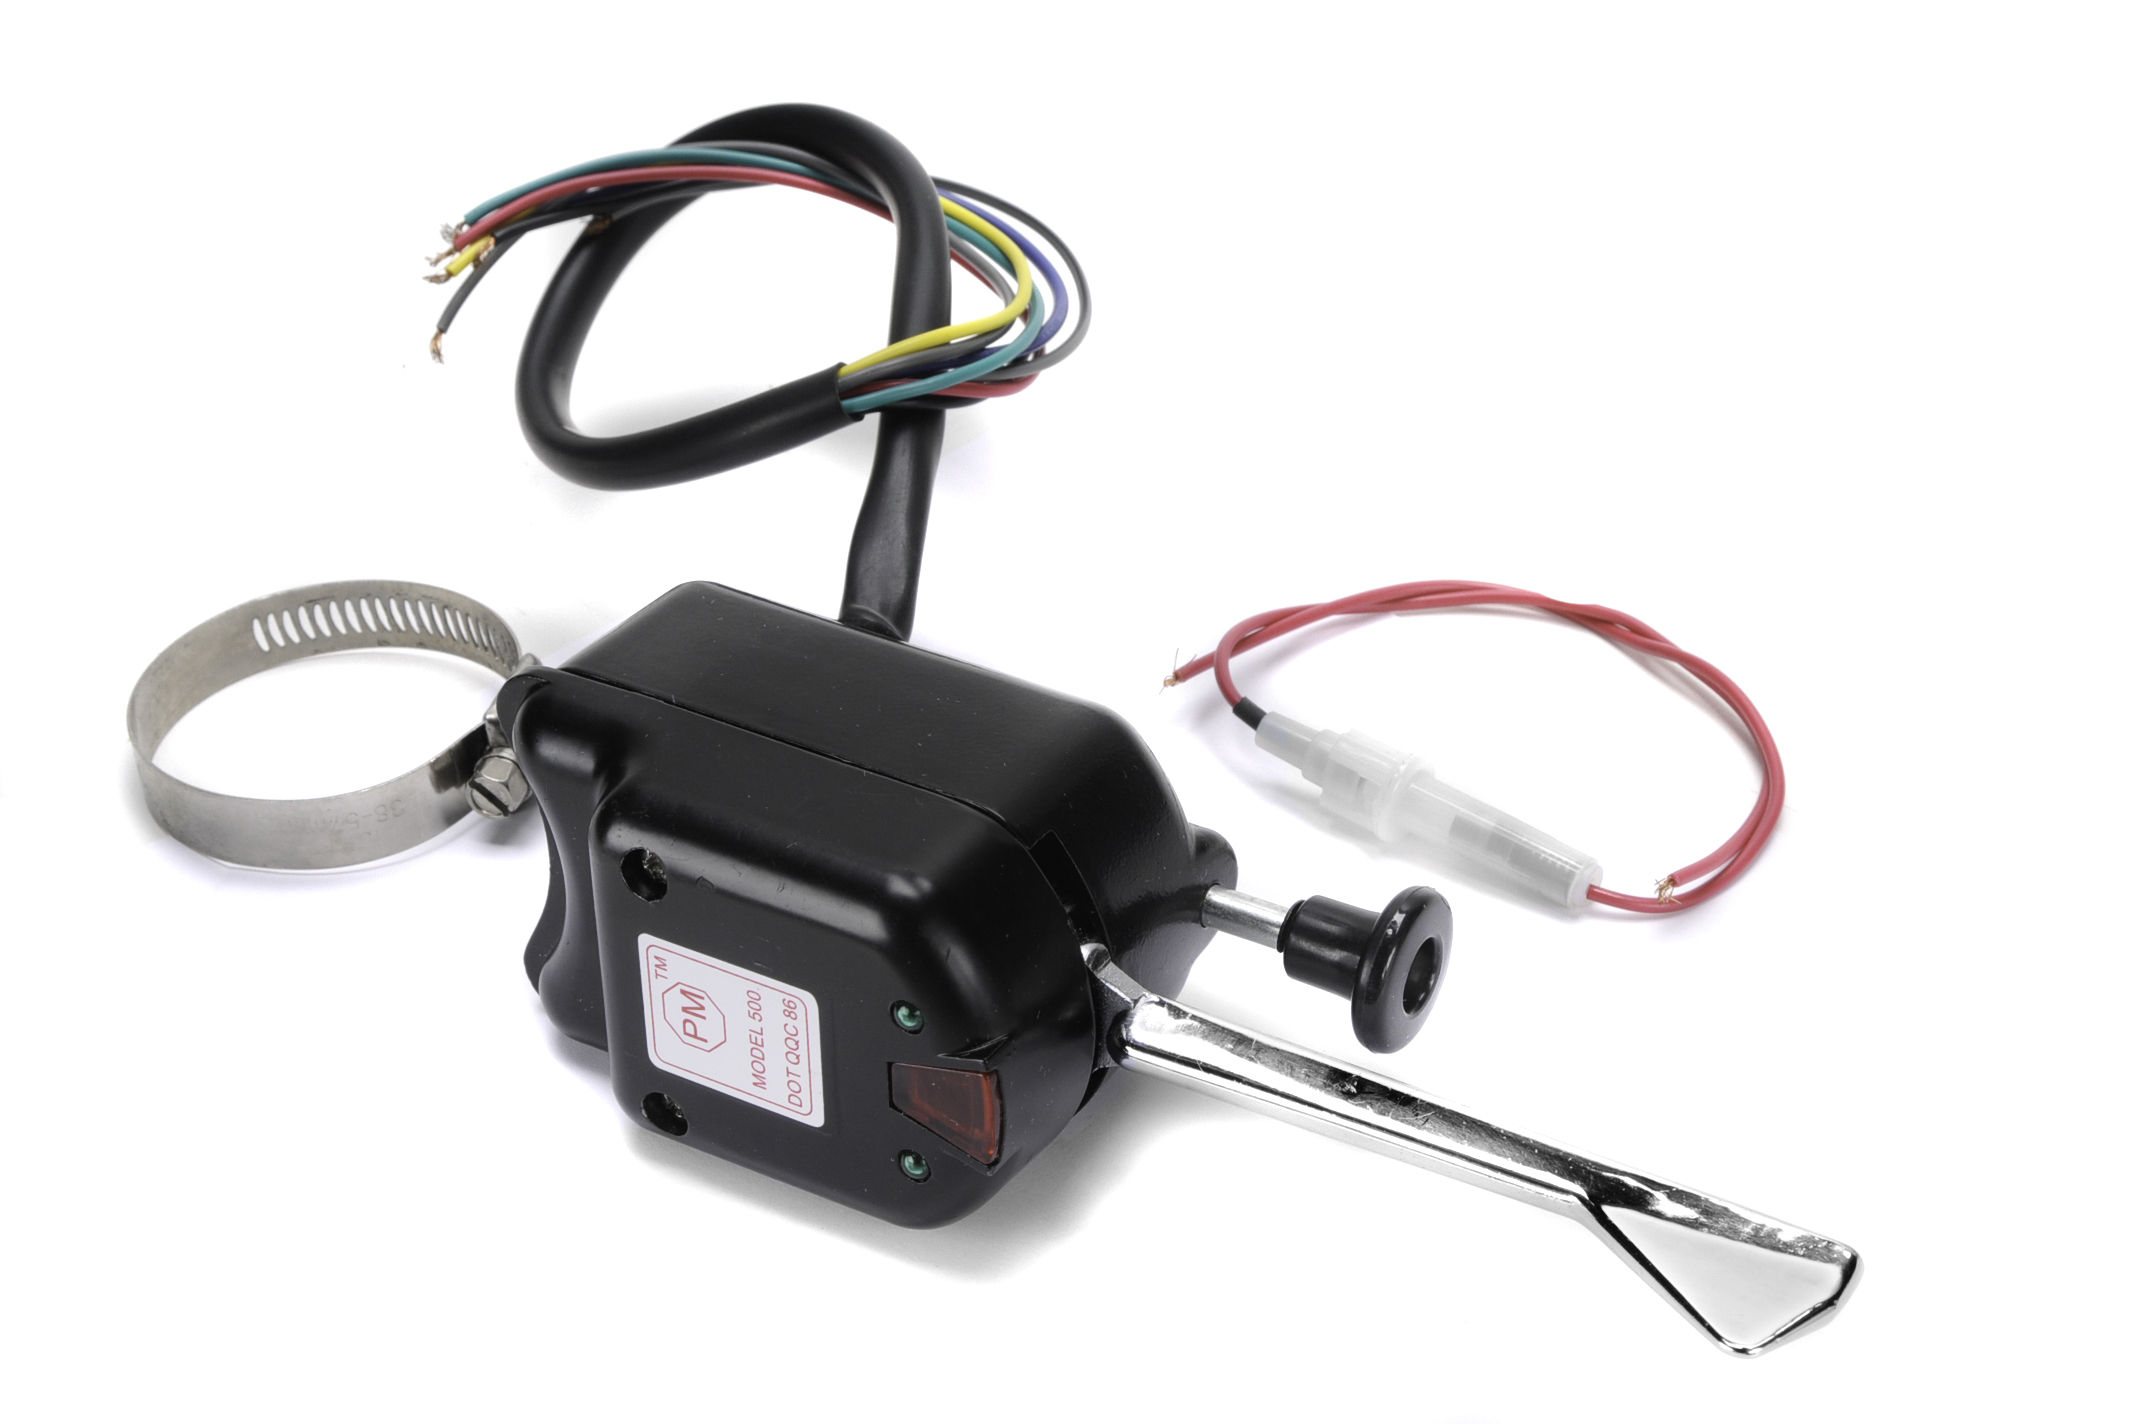 Turn signal switch - fits many IH trucks.